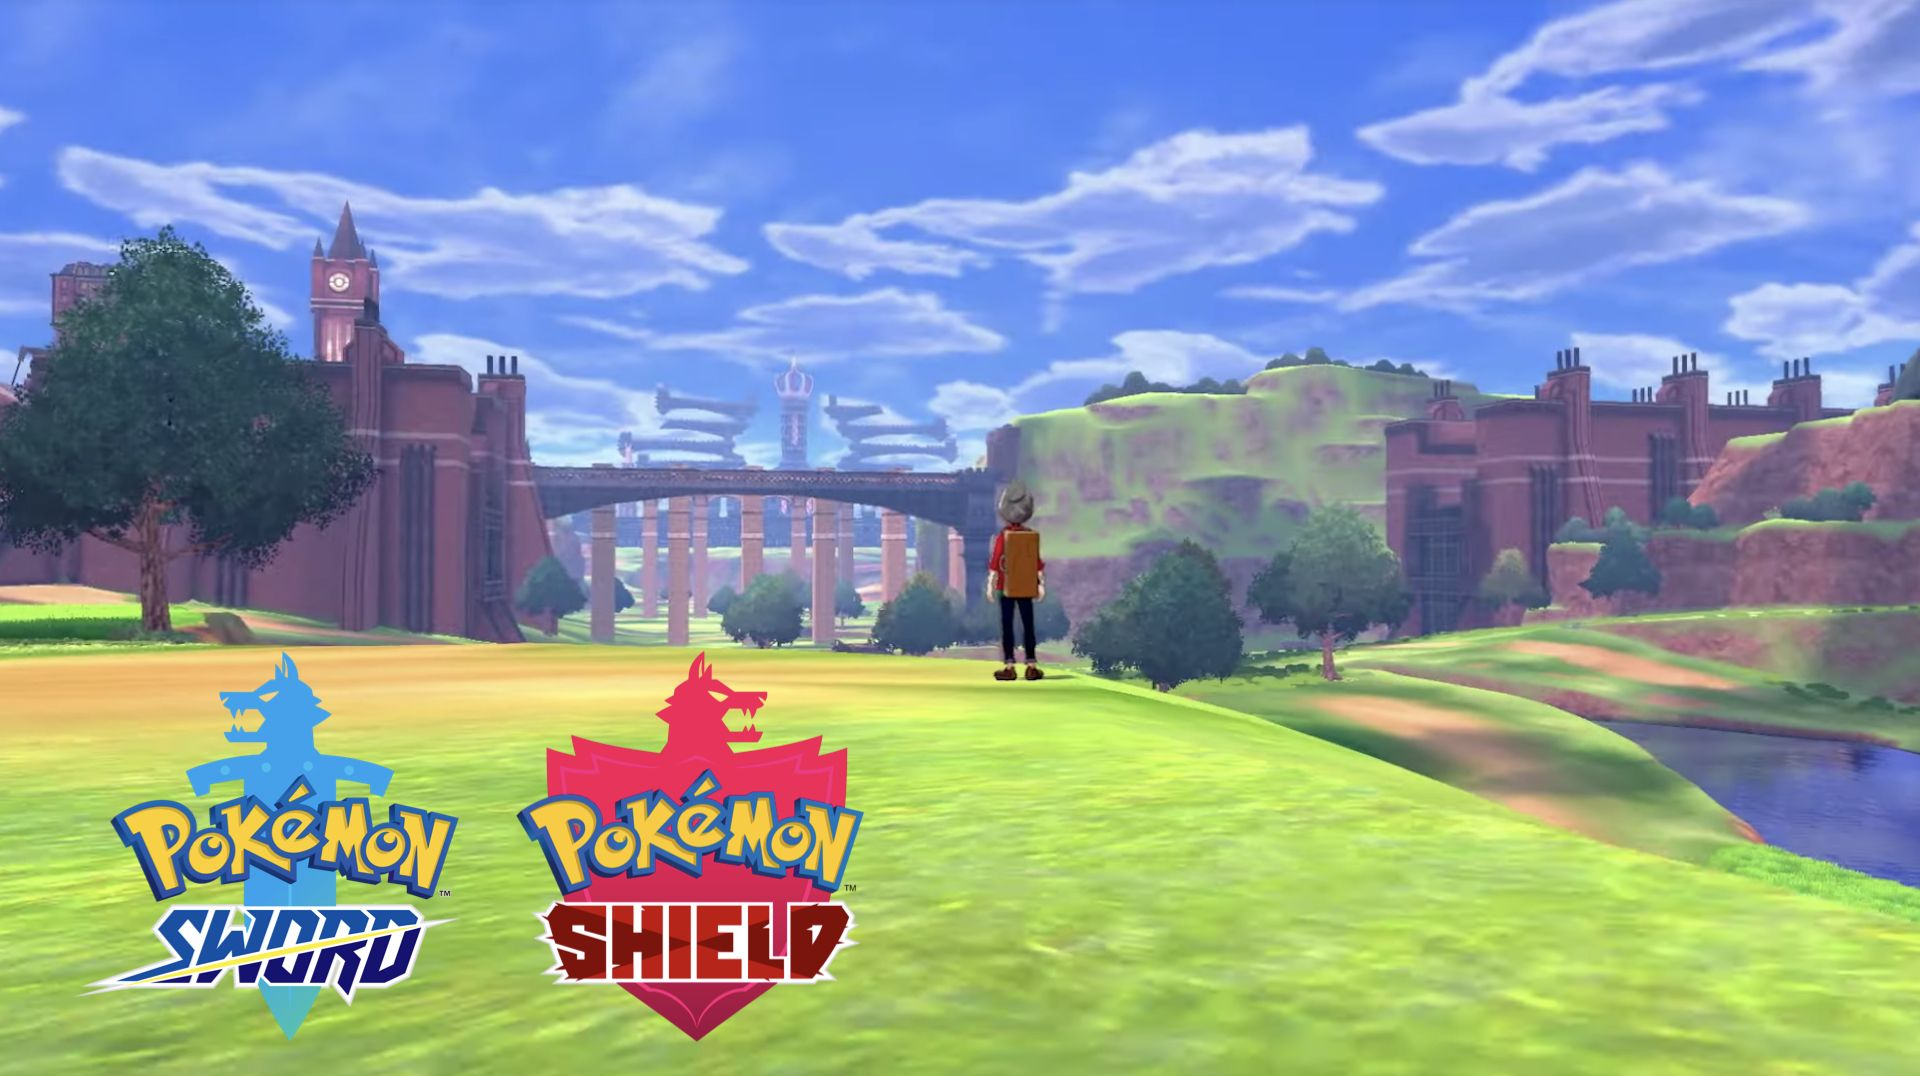 Pokemon Sword and Shield Gets Snow in The Wild Area -